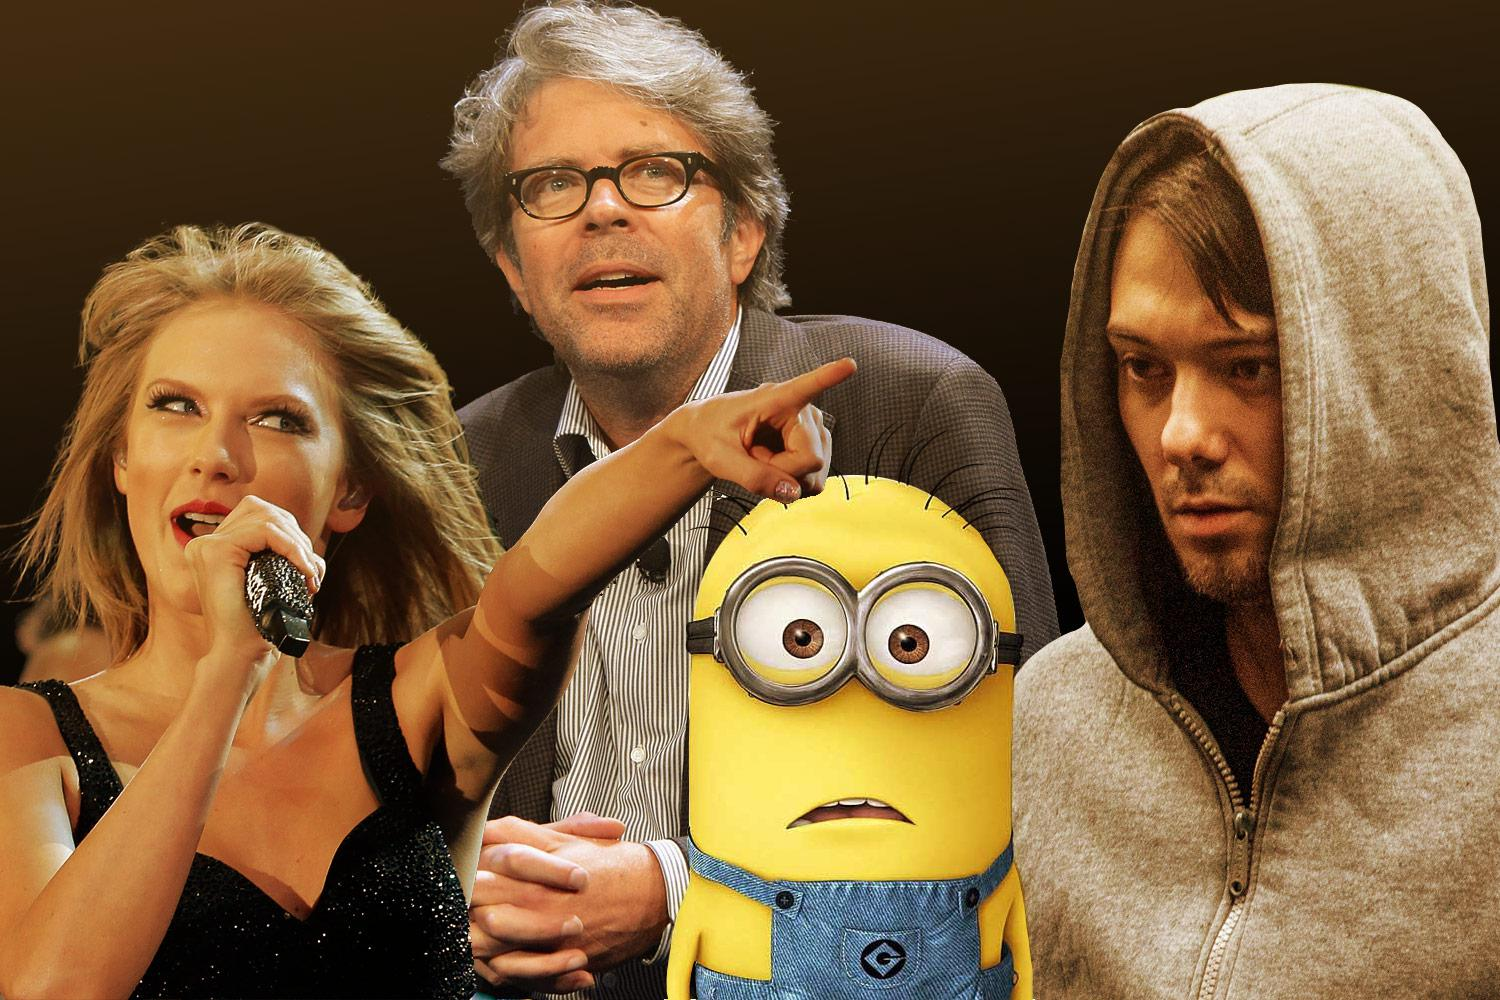 Martin Shkreli, Jonathan Franzen, Taylor Swift, and a minion